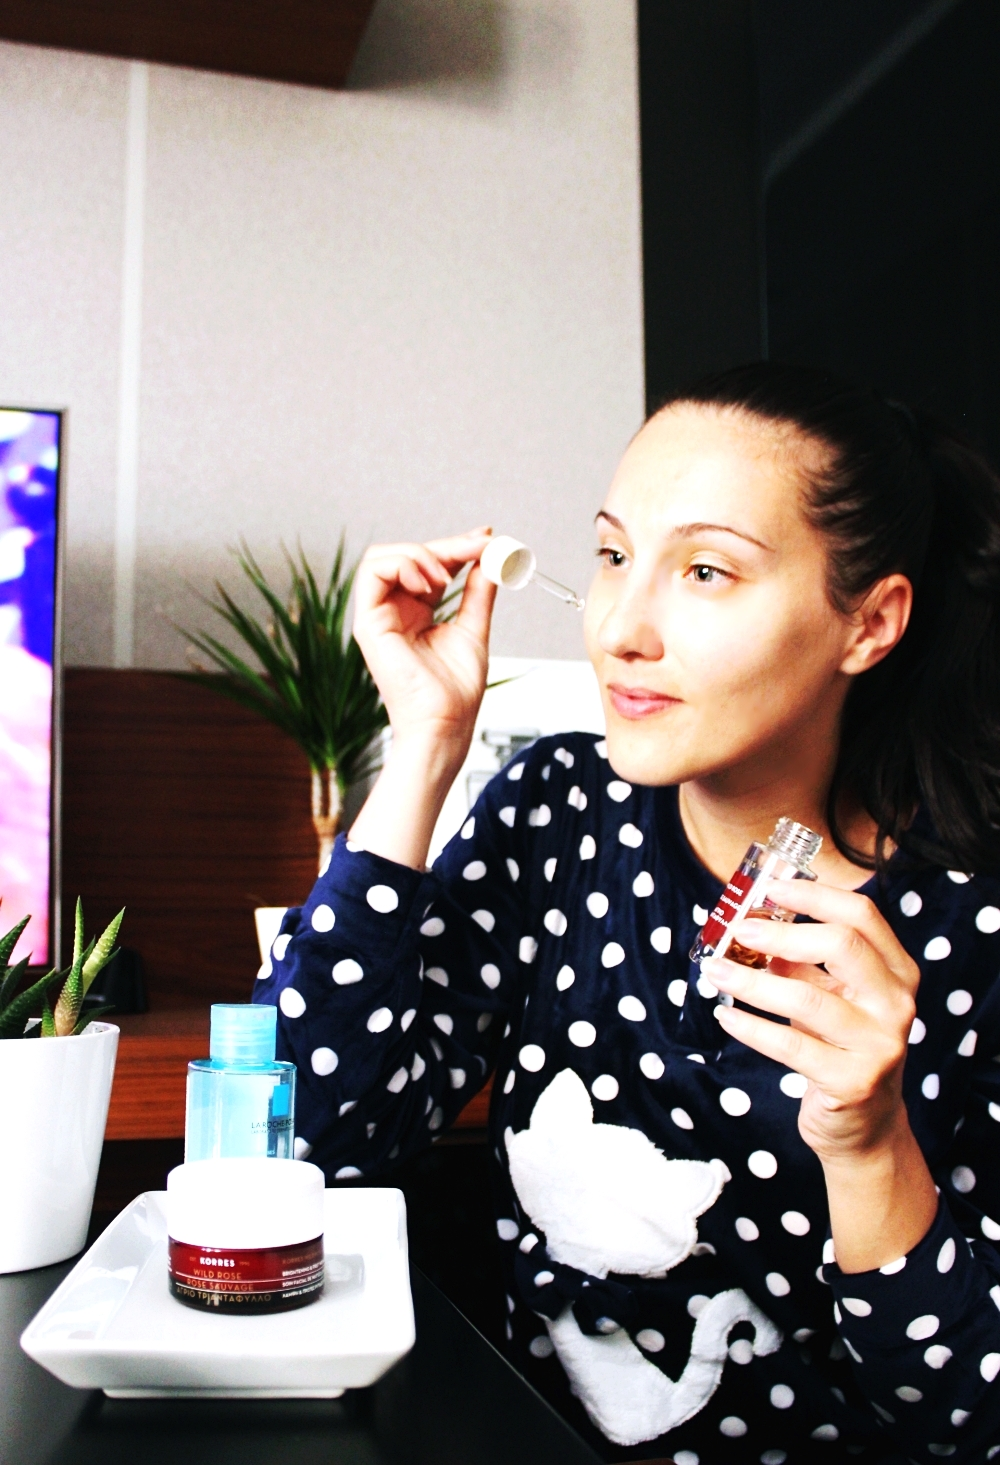 evening skincare routine for tired mom, Korres Wild Rose, glowy complexion products